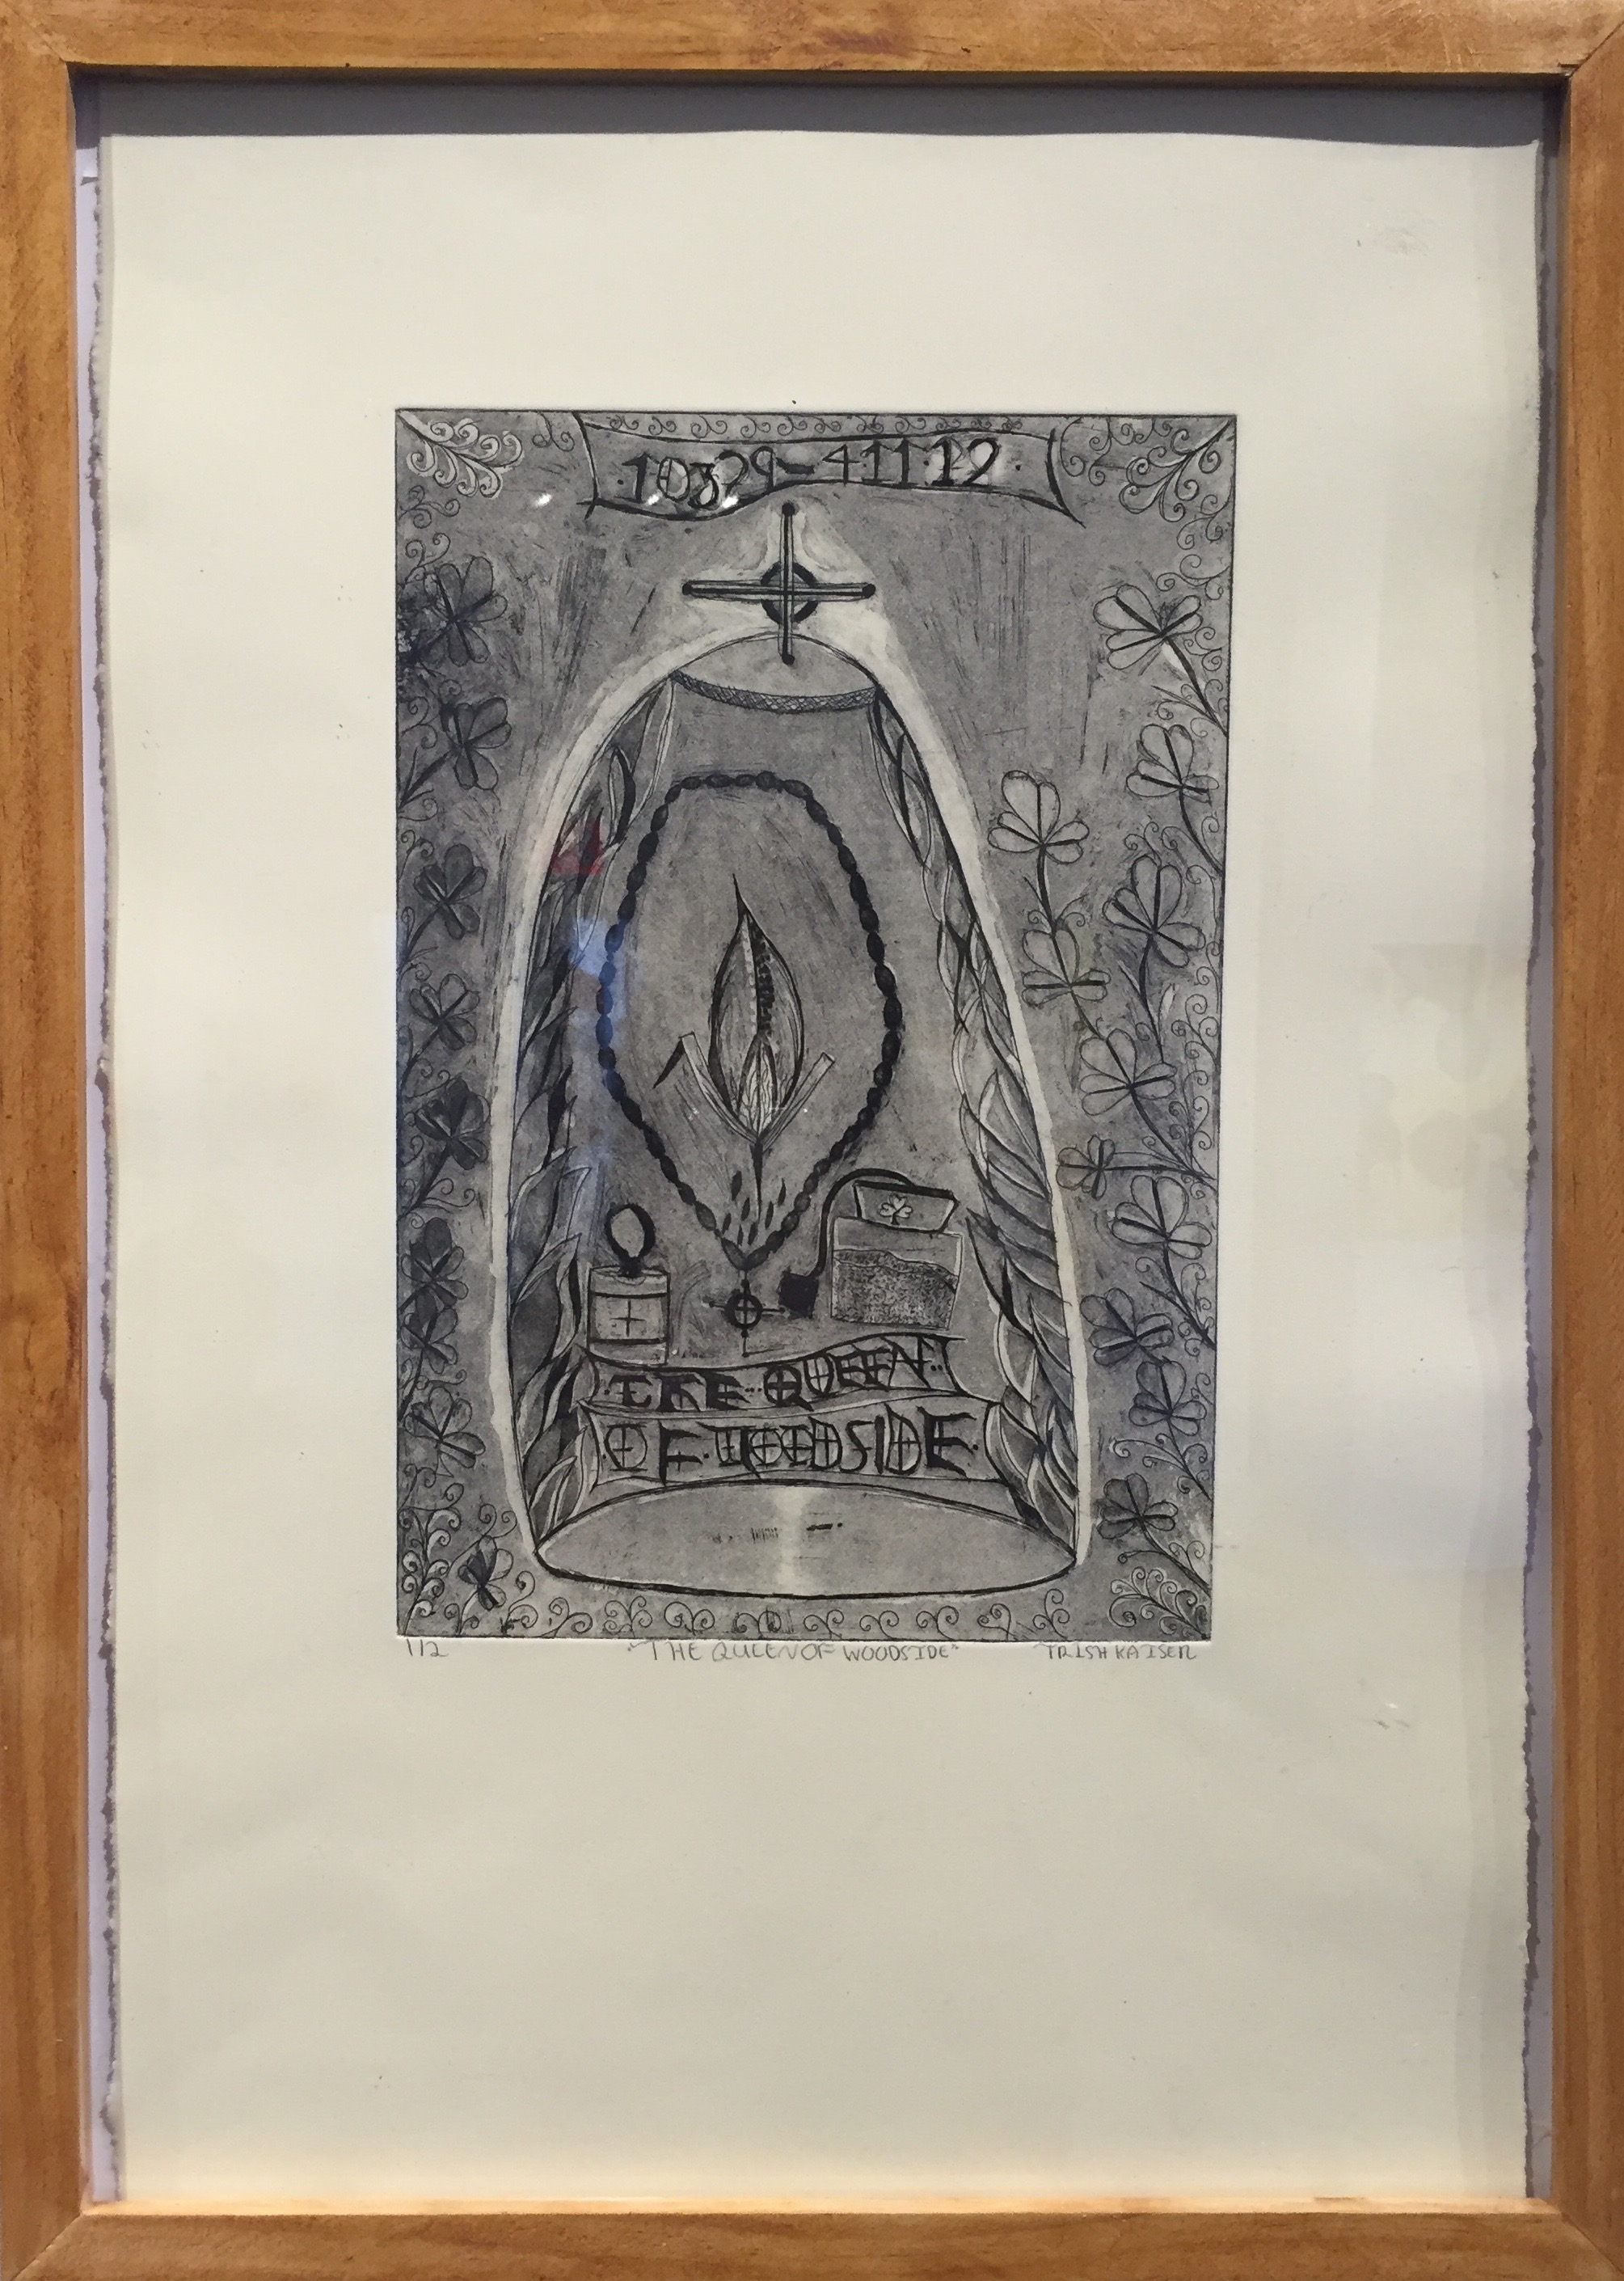 TRISH KAISER   The Queen of Woodside   etching, aquatint